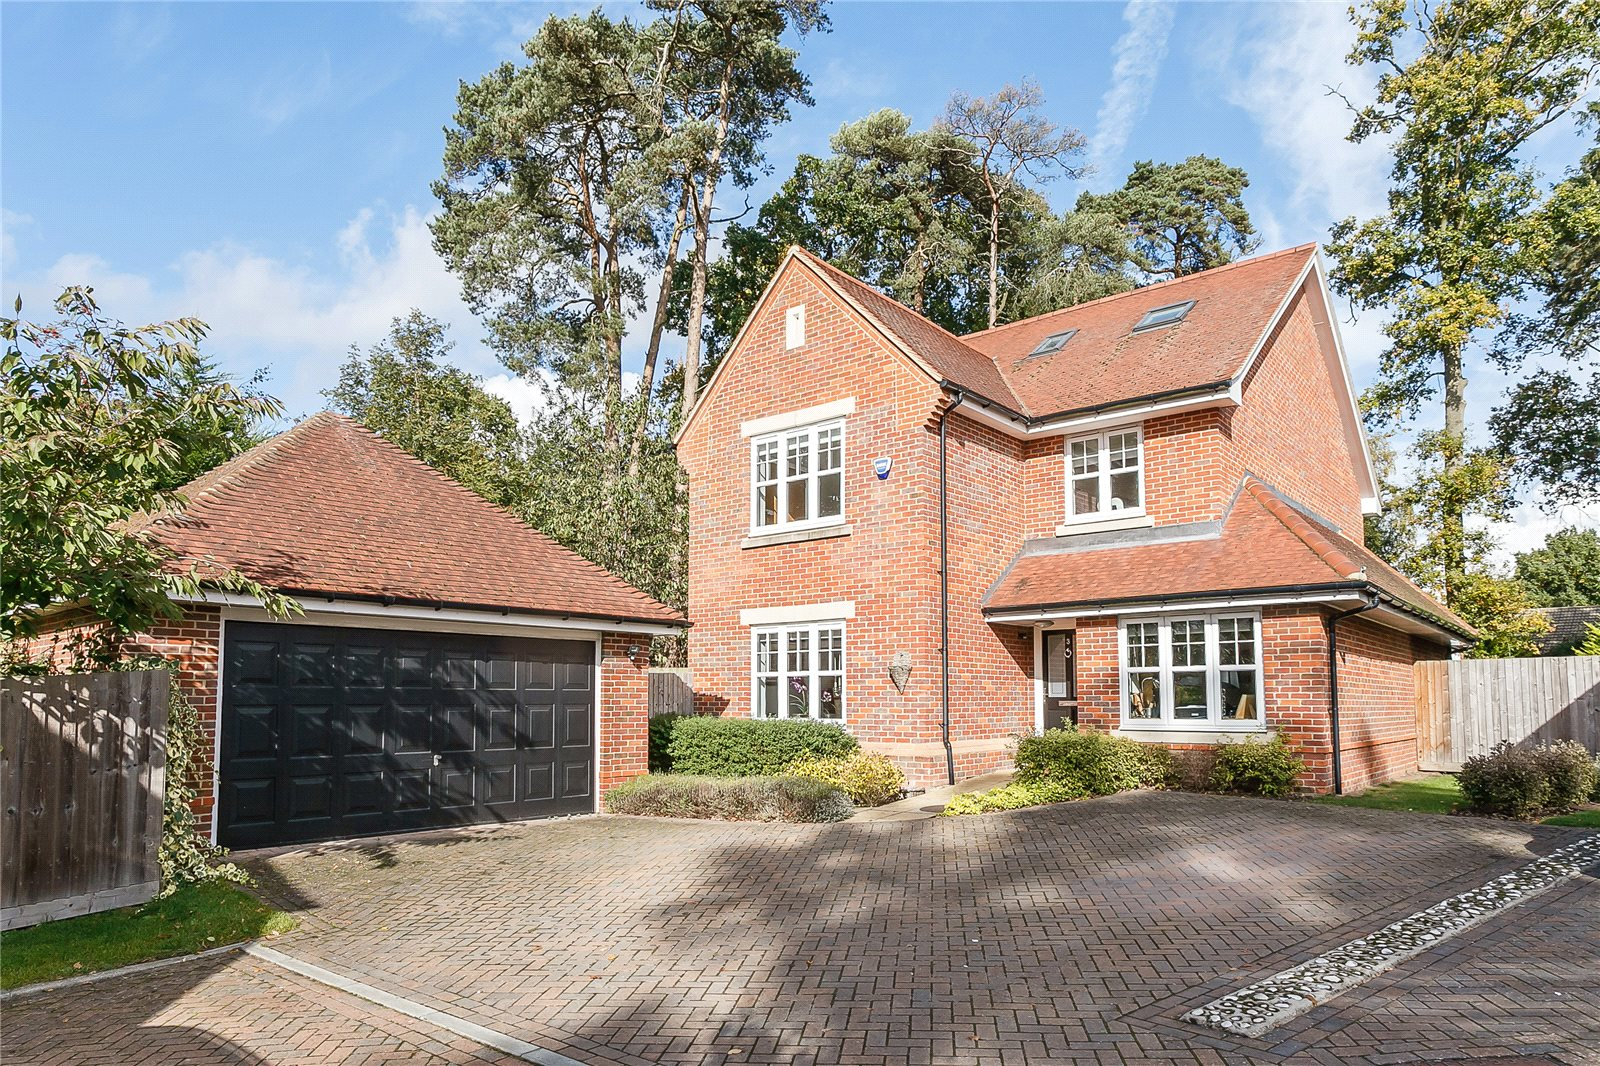 独户住宅 为 销售 在 Ortman Close, Gerrards Cross, Buckinghamshire, SL9 Gerrards Cross, 英格兰